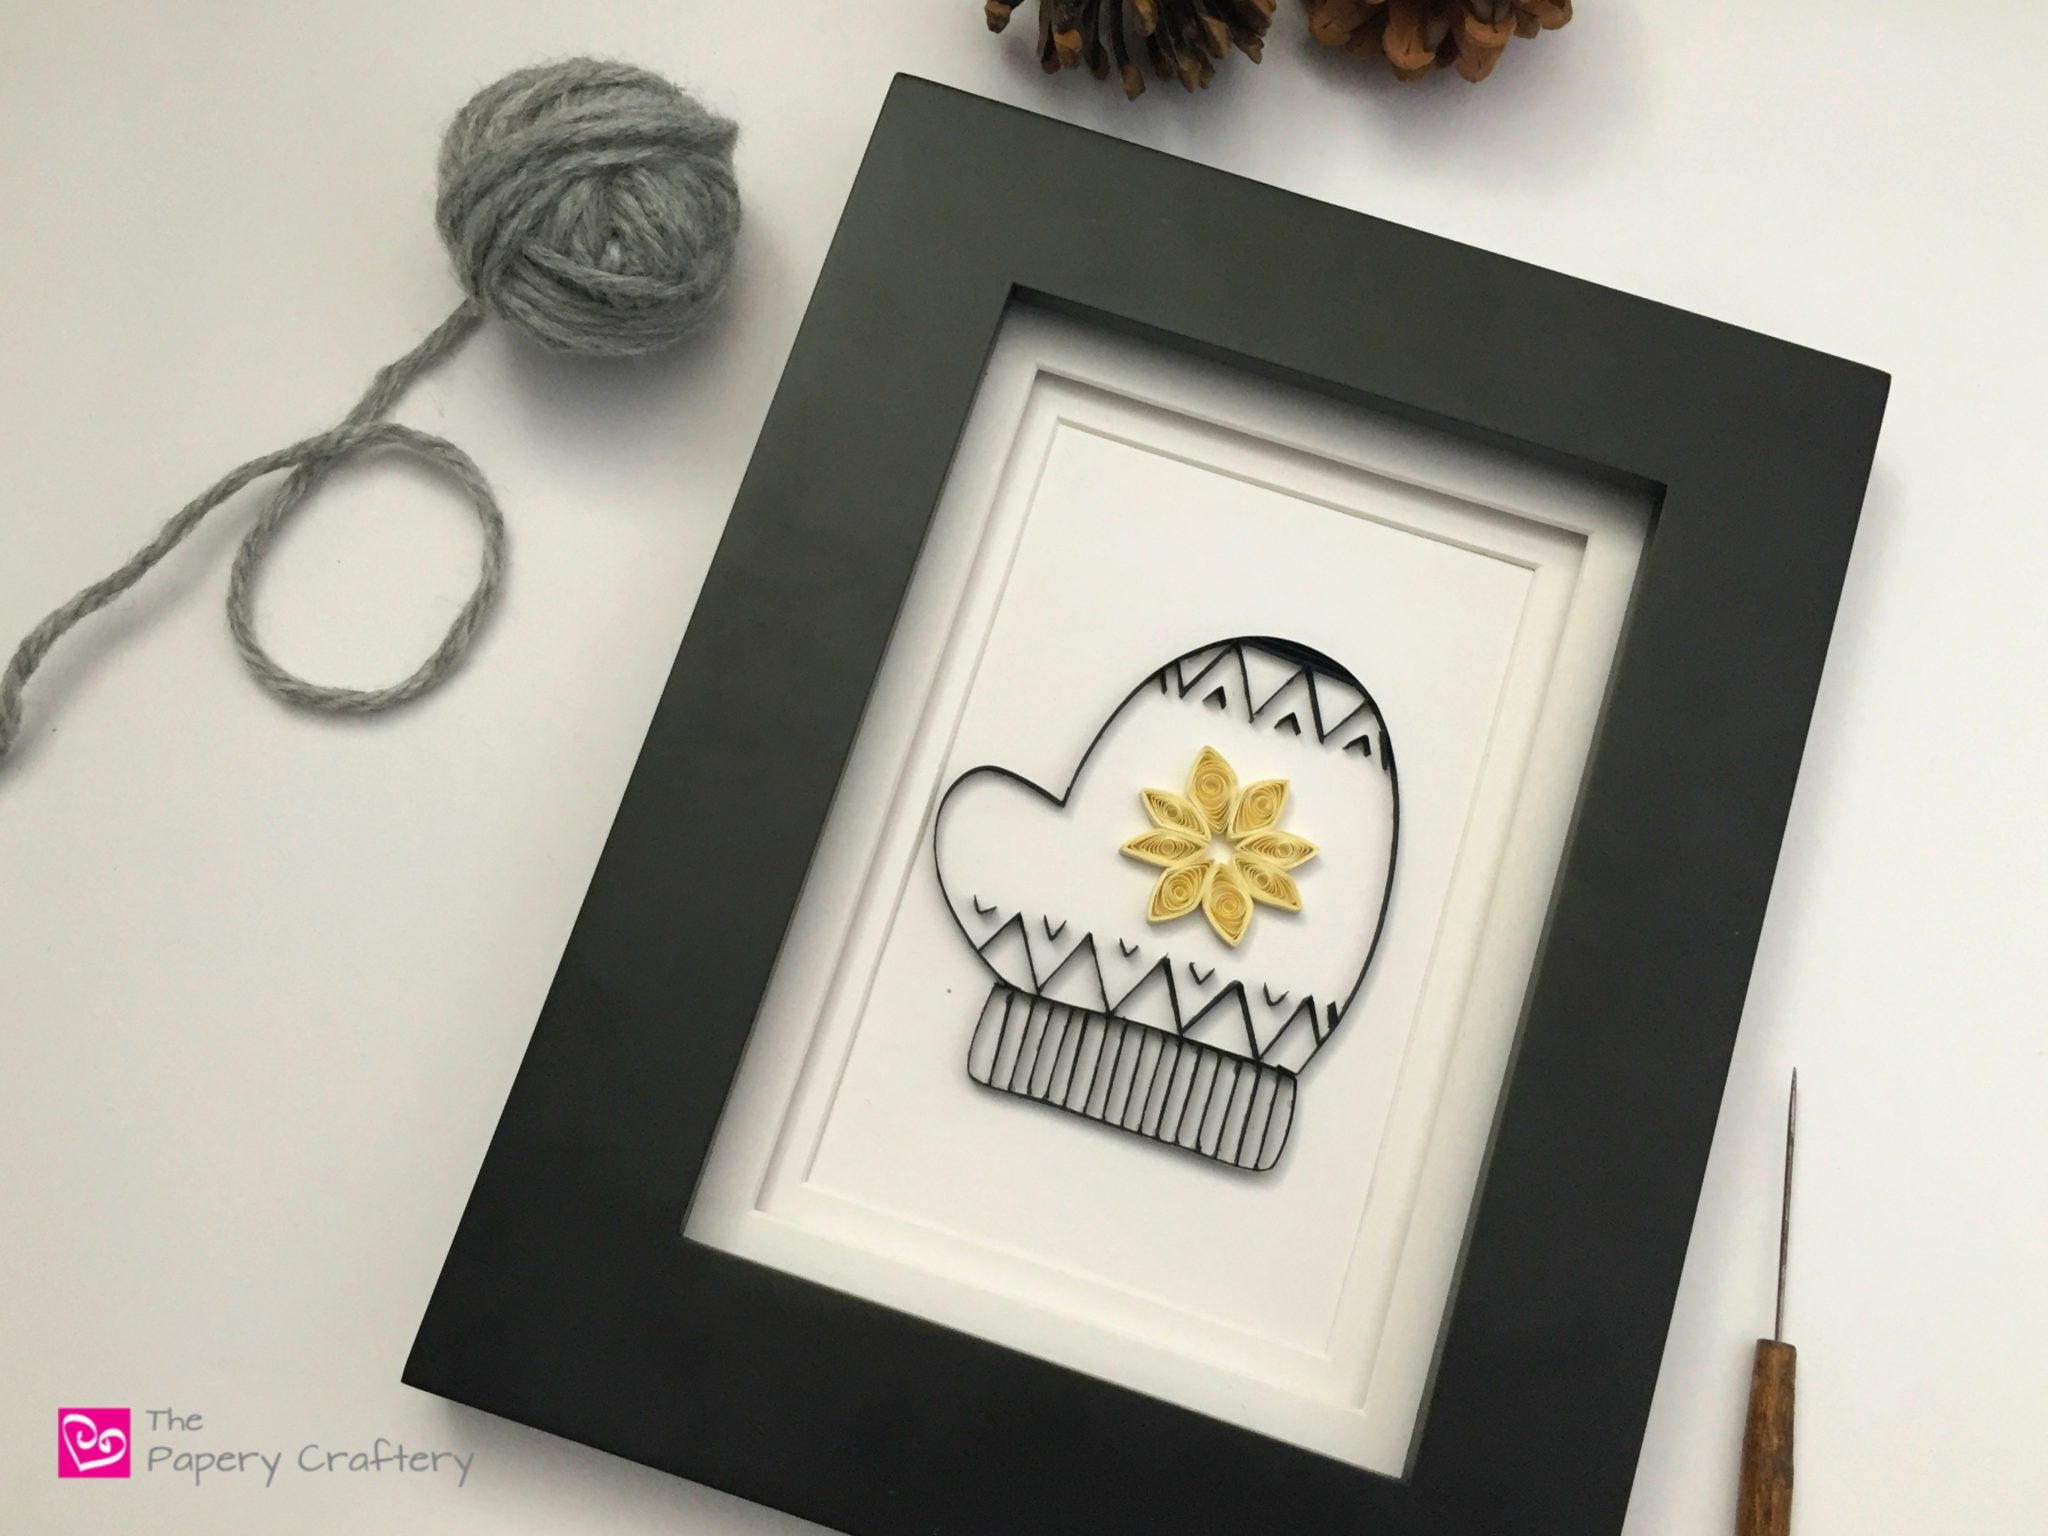 Quilling Paper Mittens ~ Make your own winter home decor with these simple mitten templates || www.ThePaperyCraftery.com